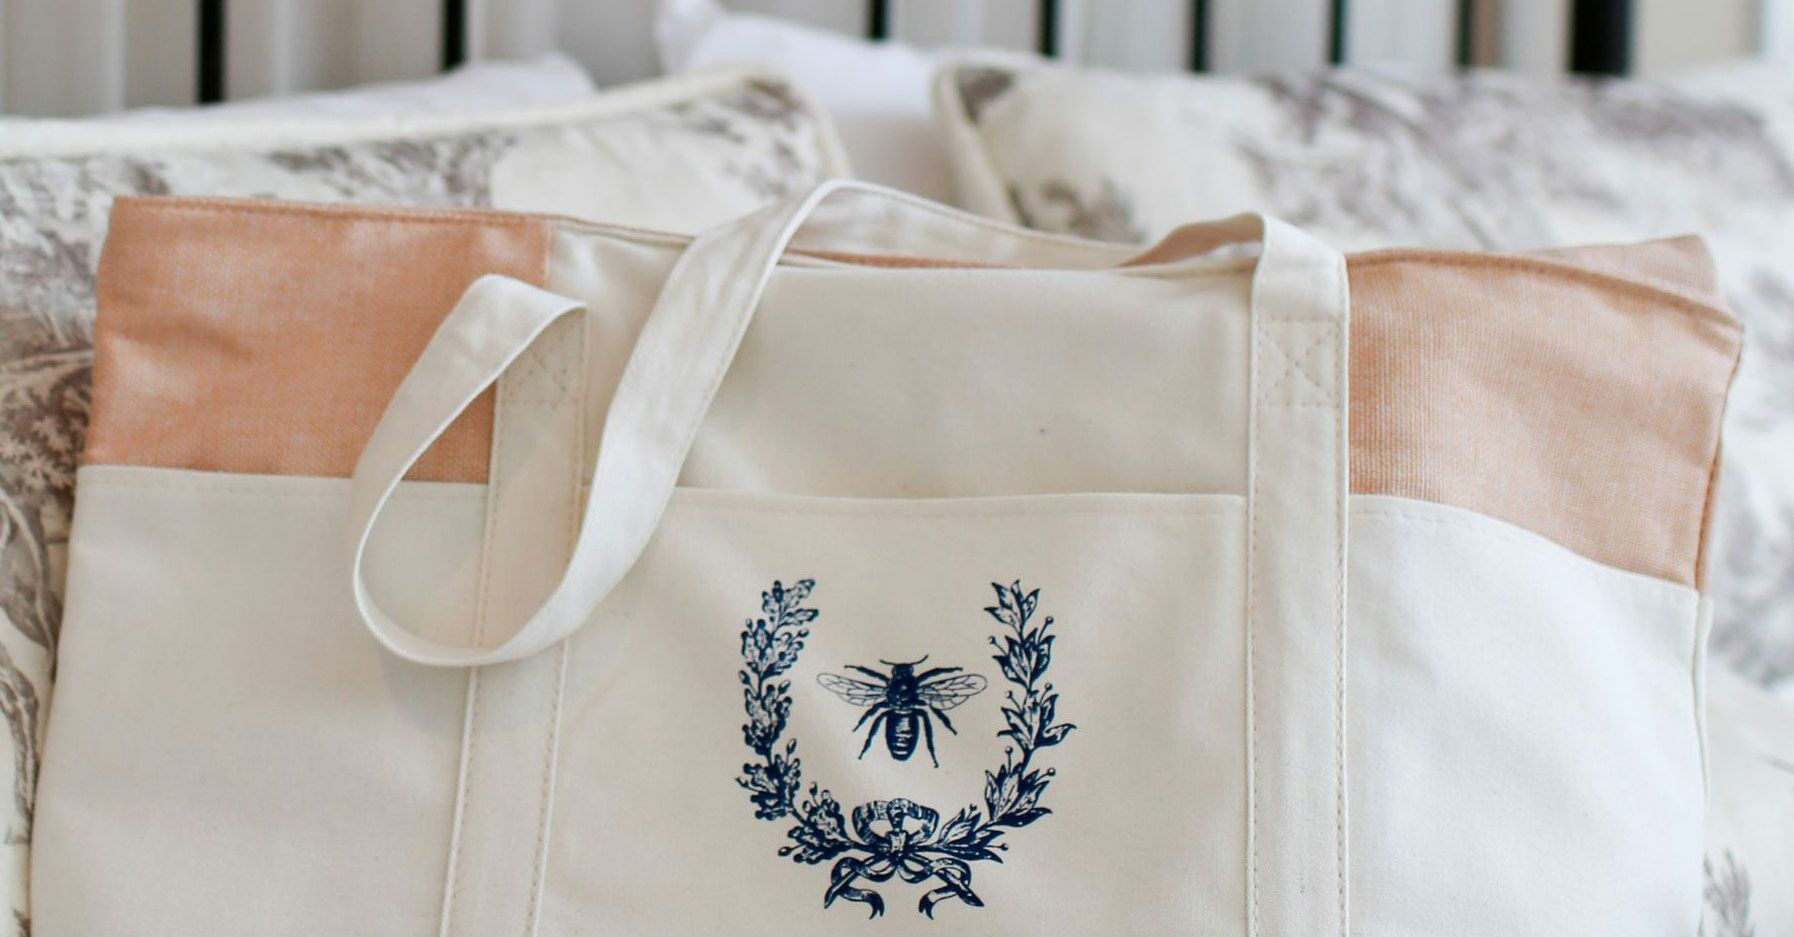 Wedding Gift Bag Ideas For Your Guests: The Best Wedding Welcome Bag Ideas For Out Of Town Guests